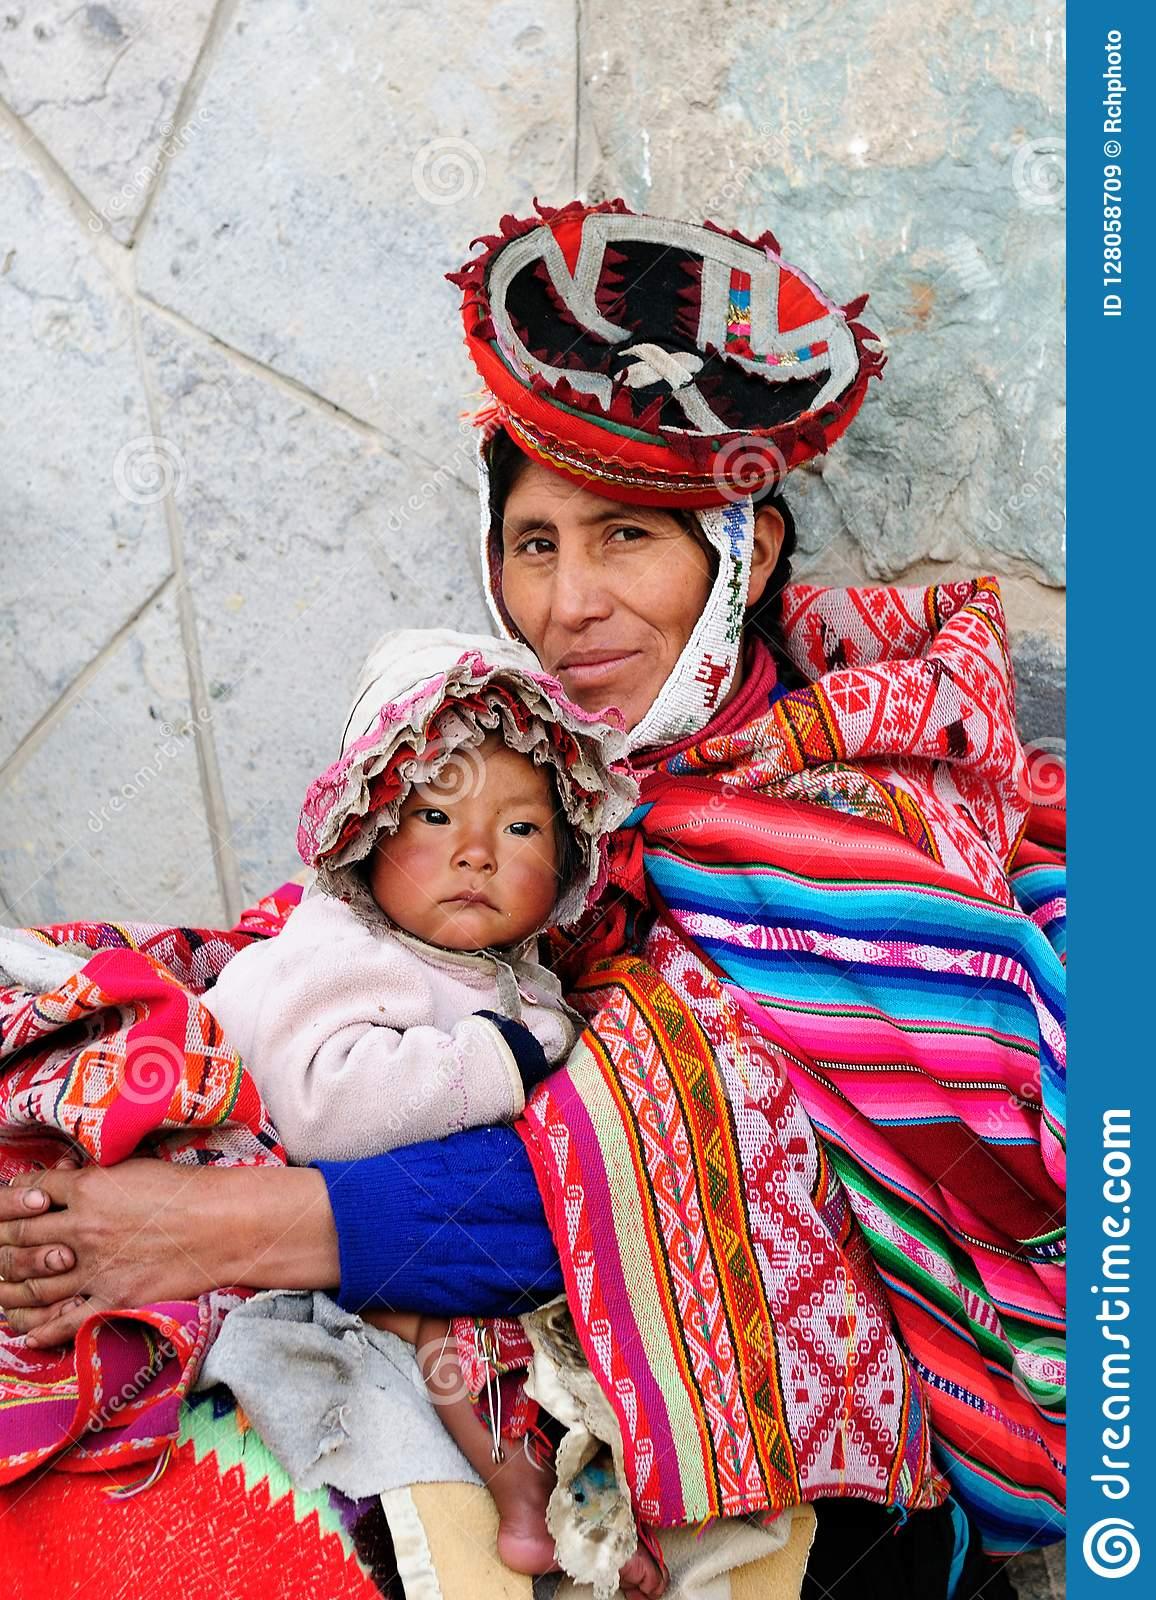 people from peru editorial stock image image of dress 128058709